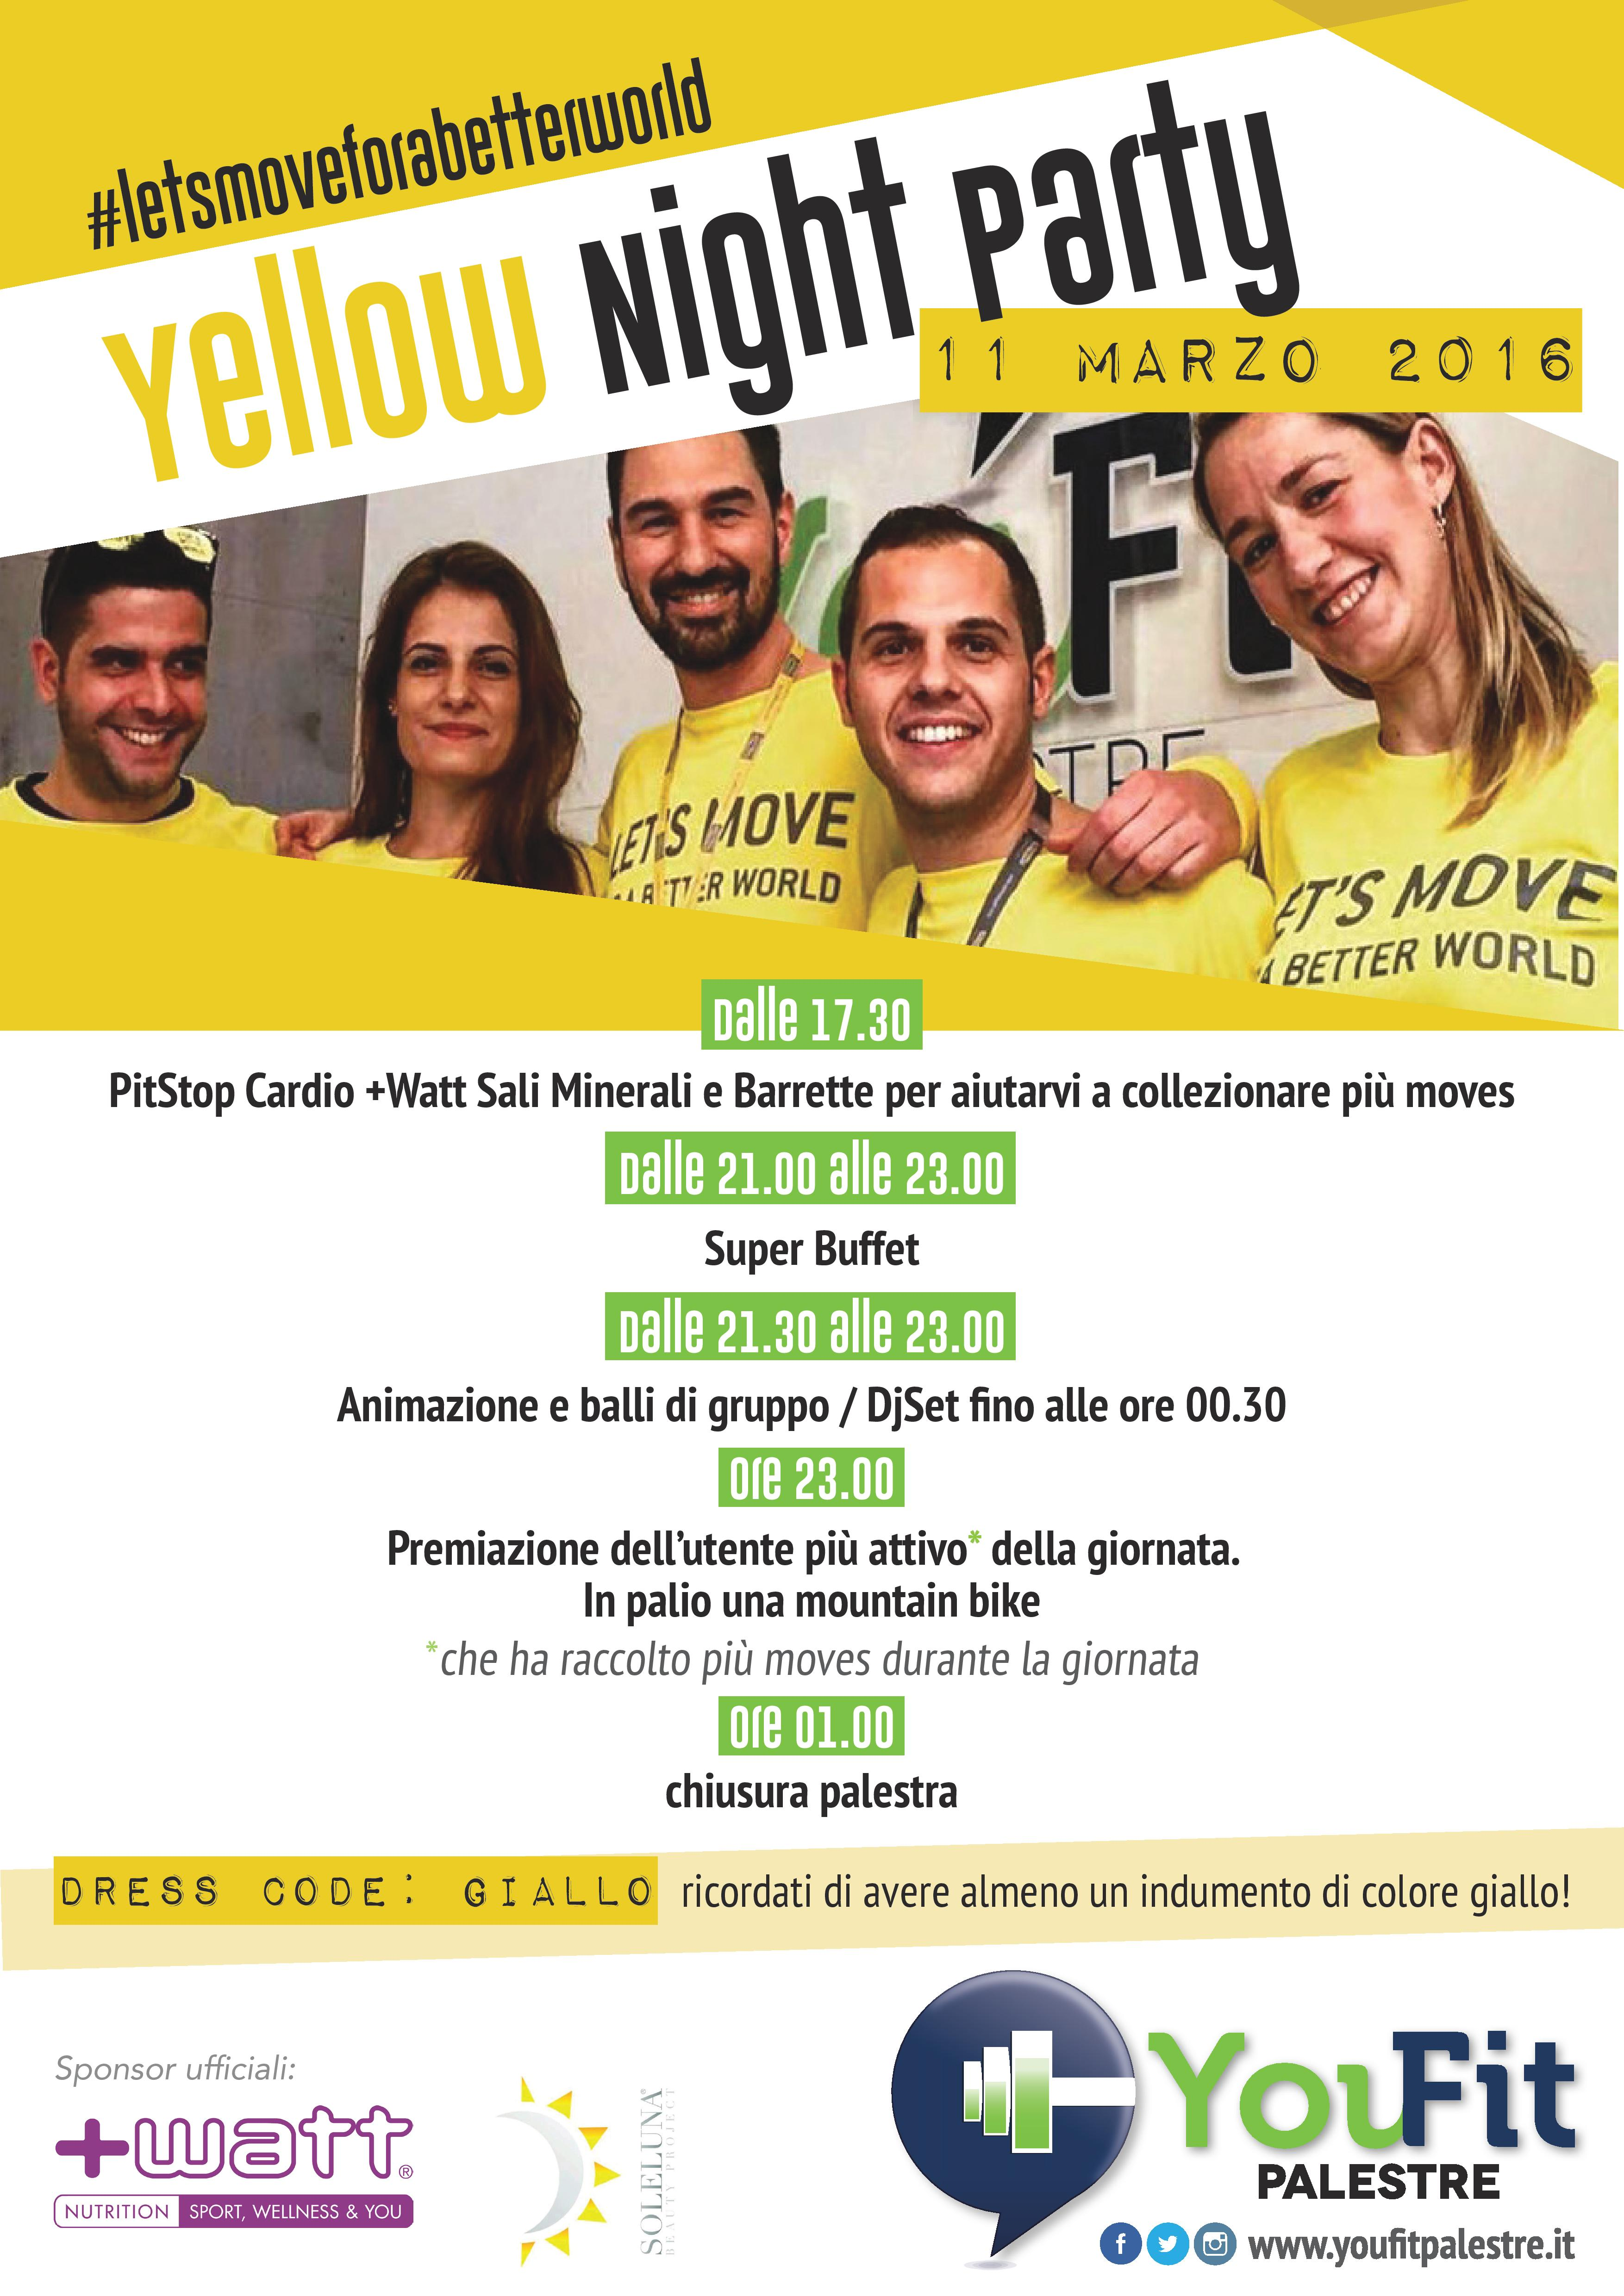 YELLOW NIGHT PARTY 11/3/2016